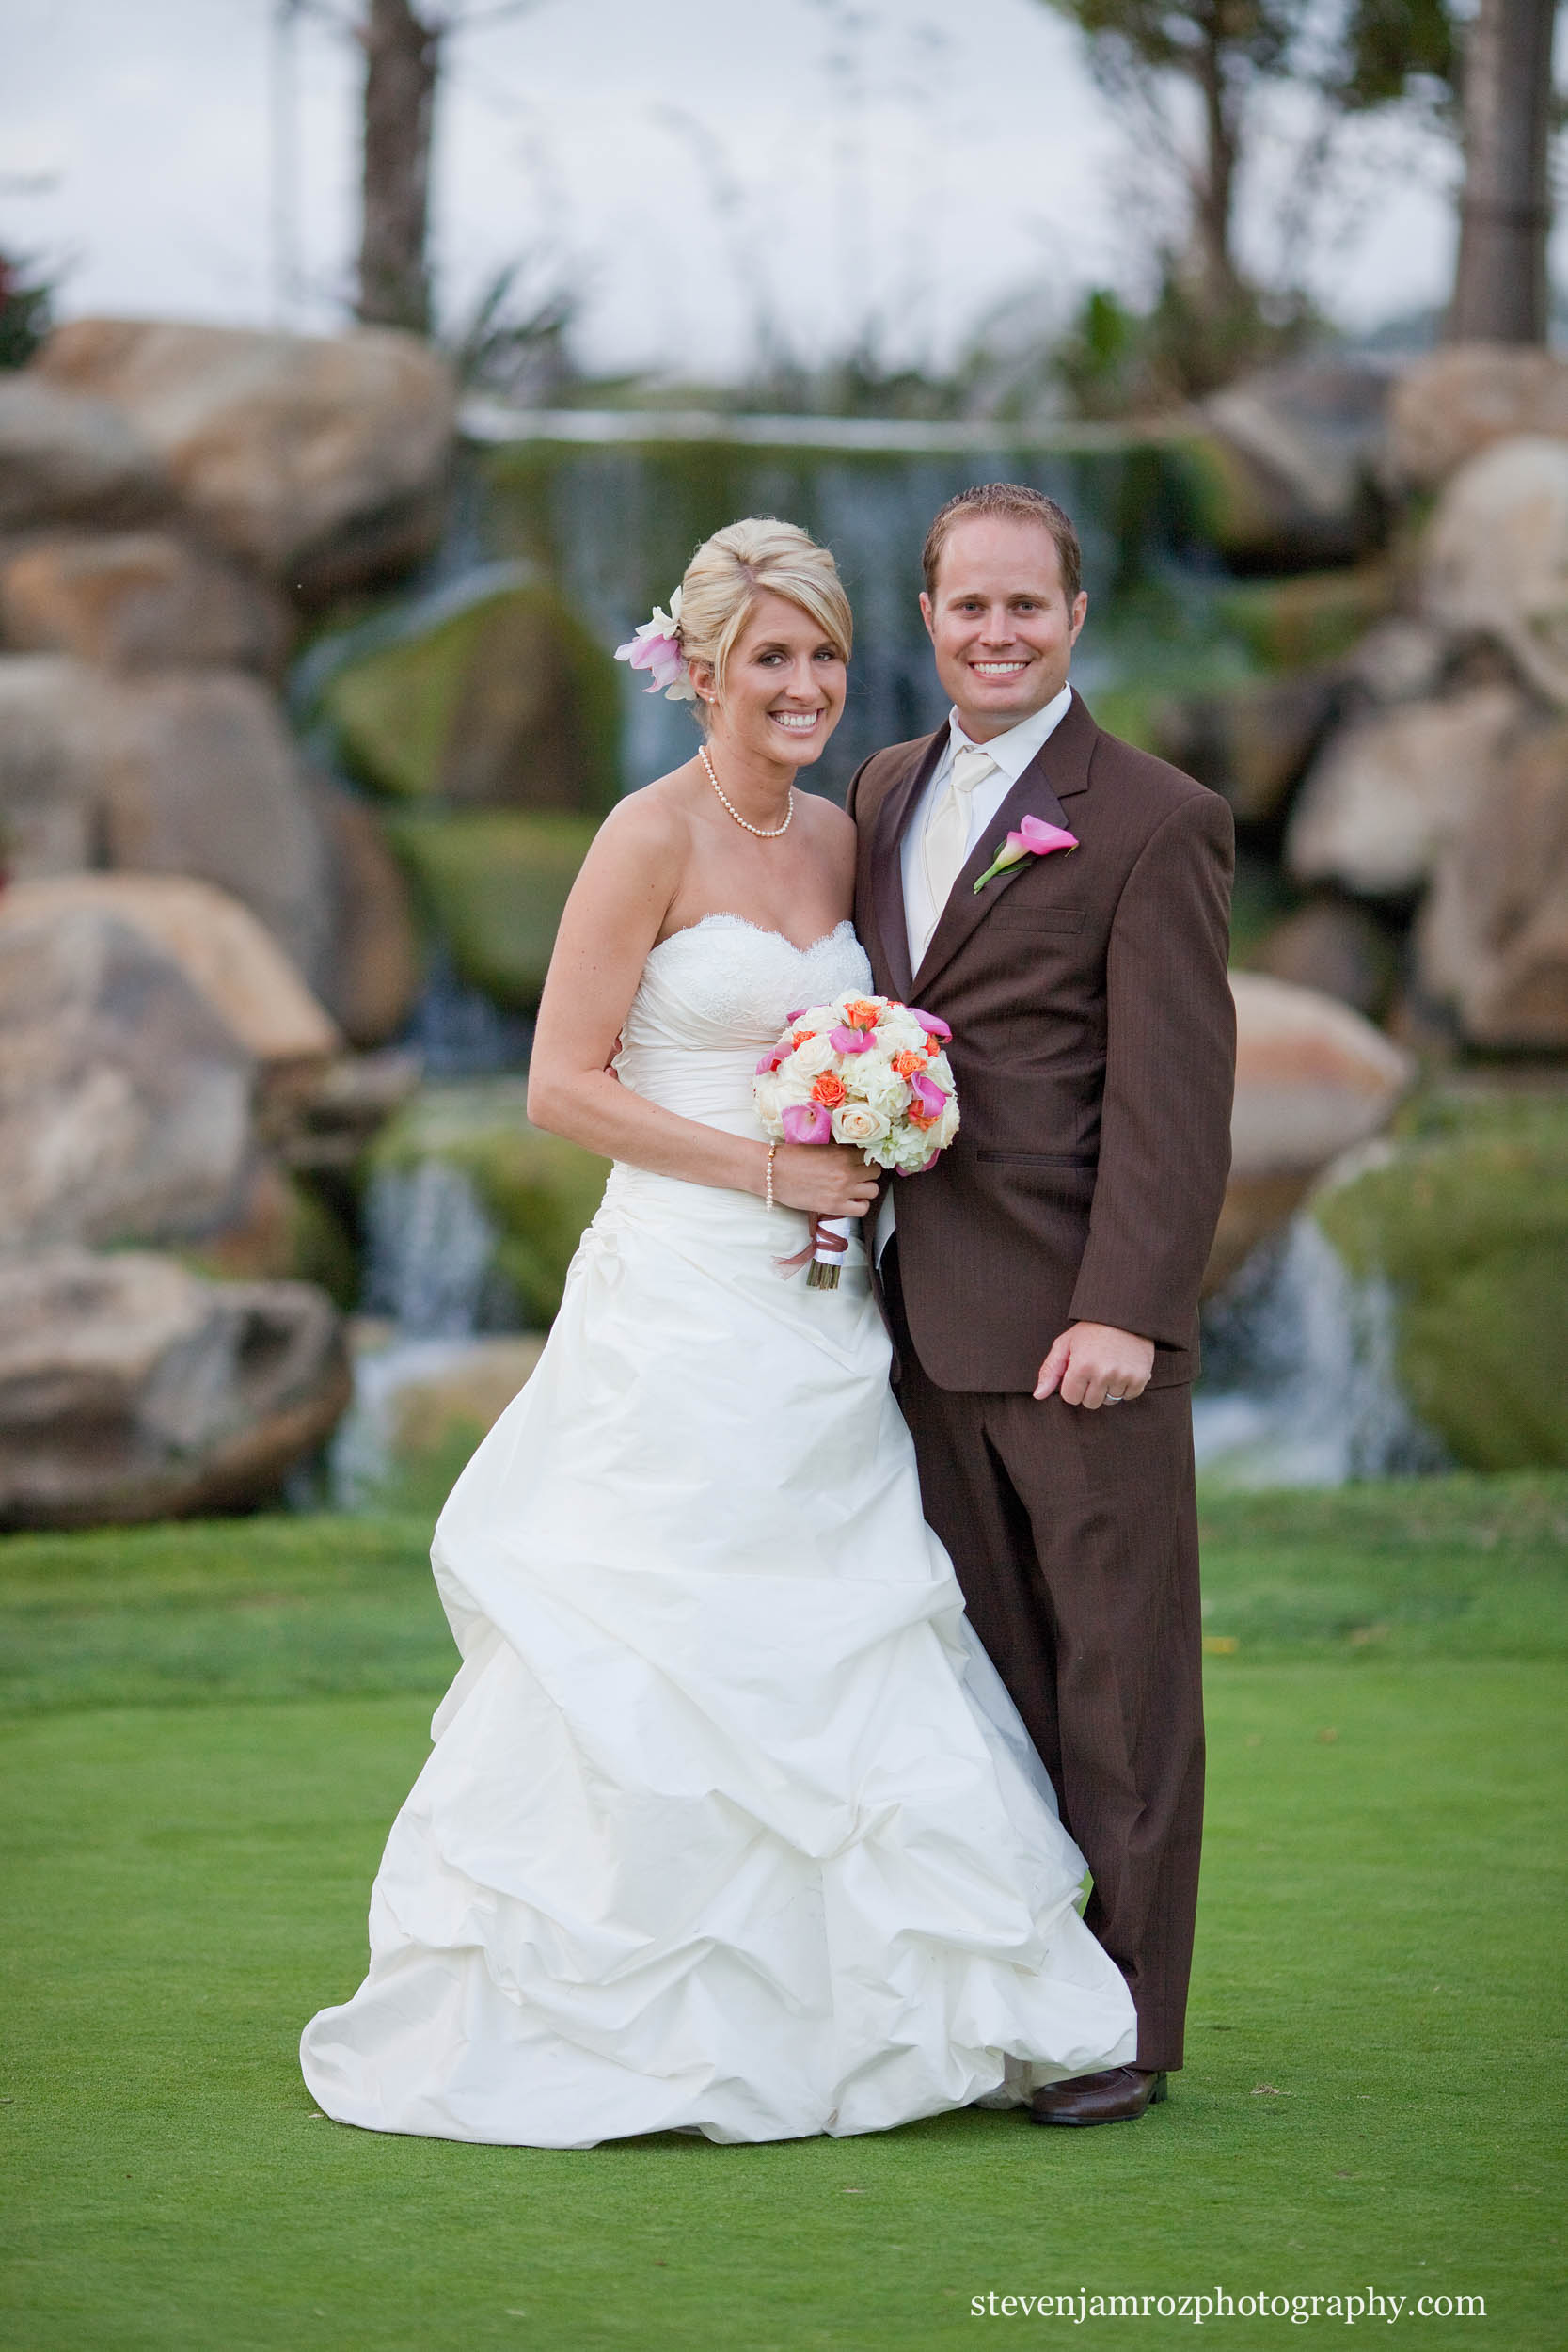 waterfall-portrait-wedding-raleigh-steven-jamroz-photography-0555.jpg